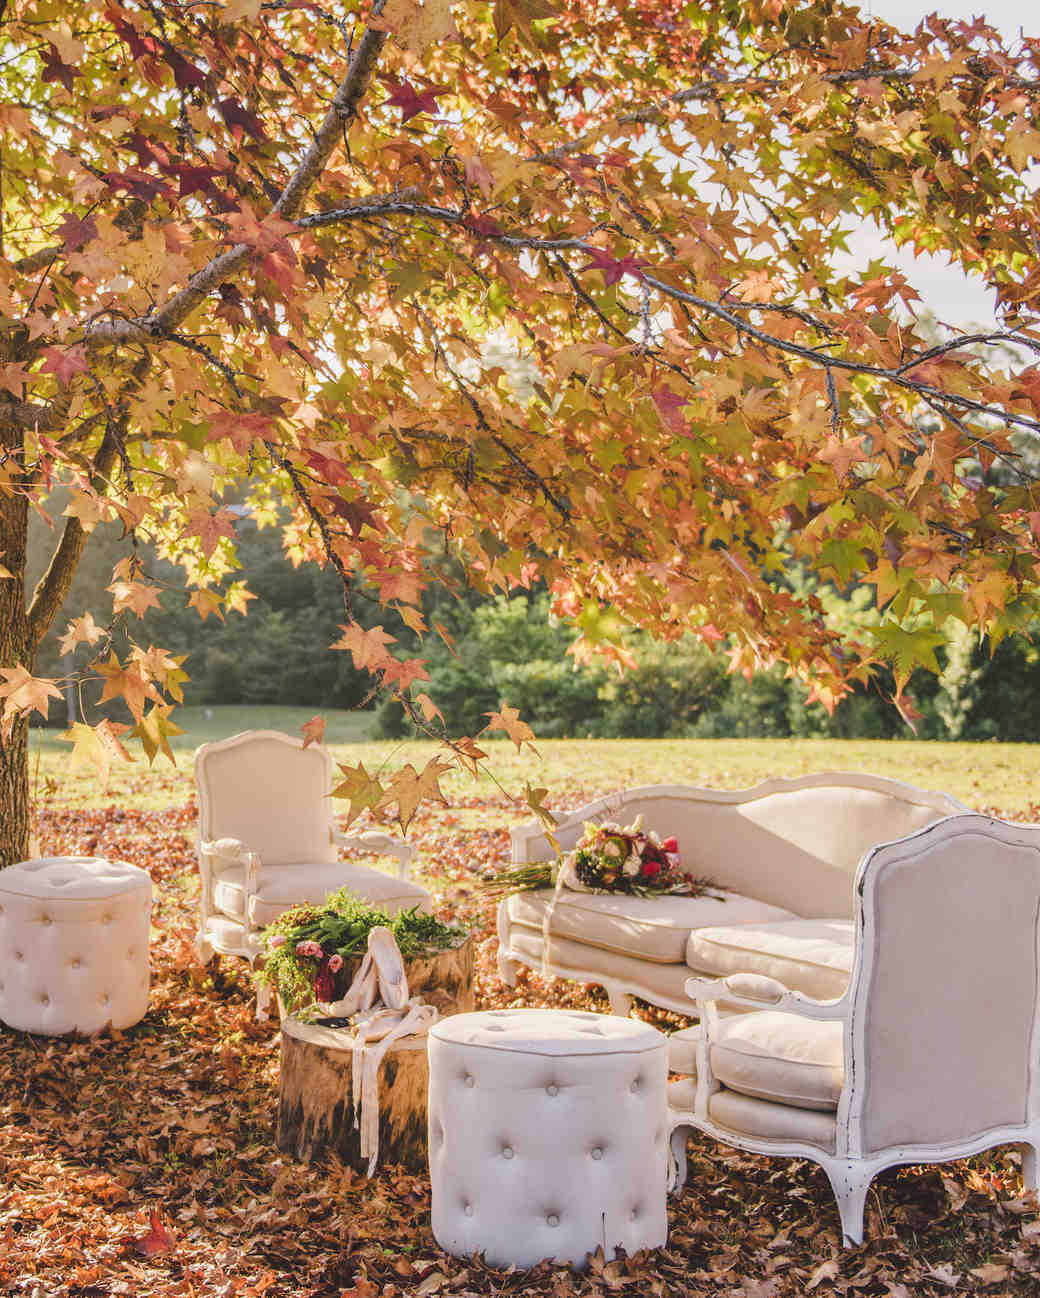 Outdoor Wedding Seating Ideas: Our Favorite Seasonal Ideas For A Fall Wedding